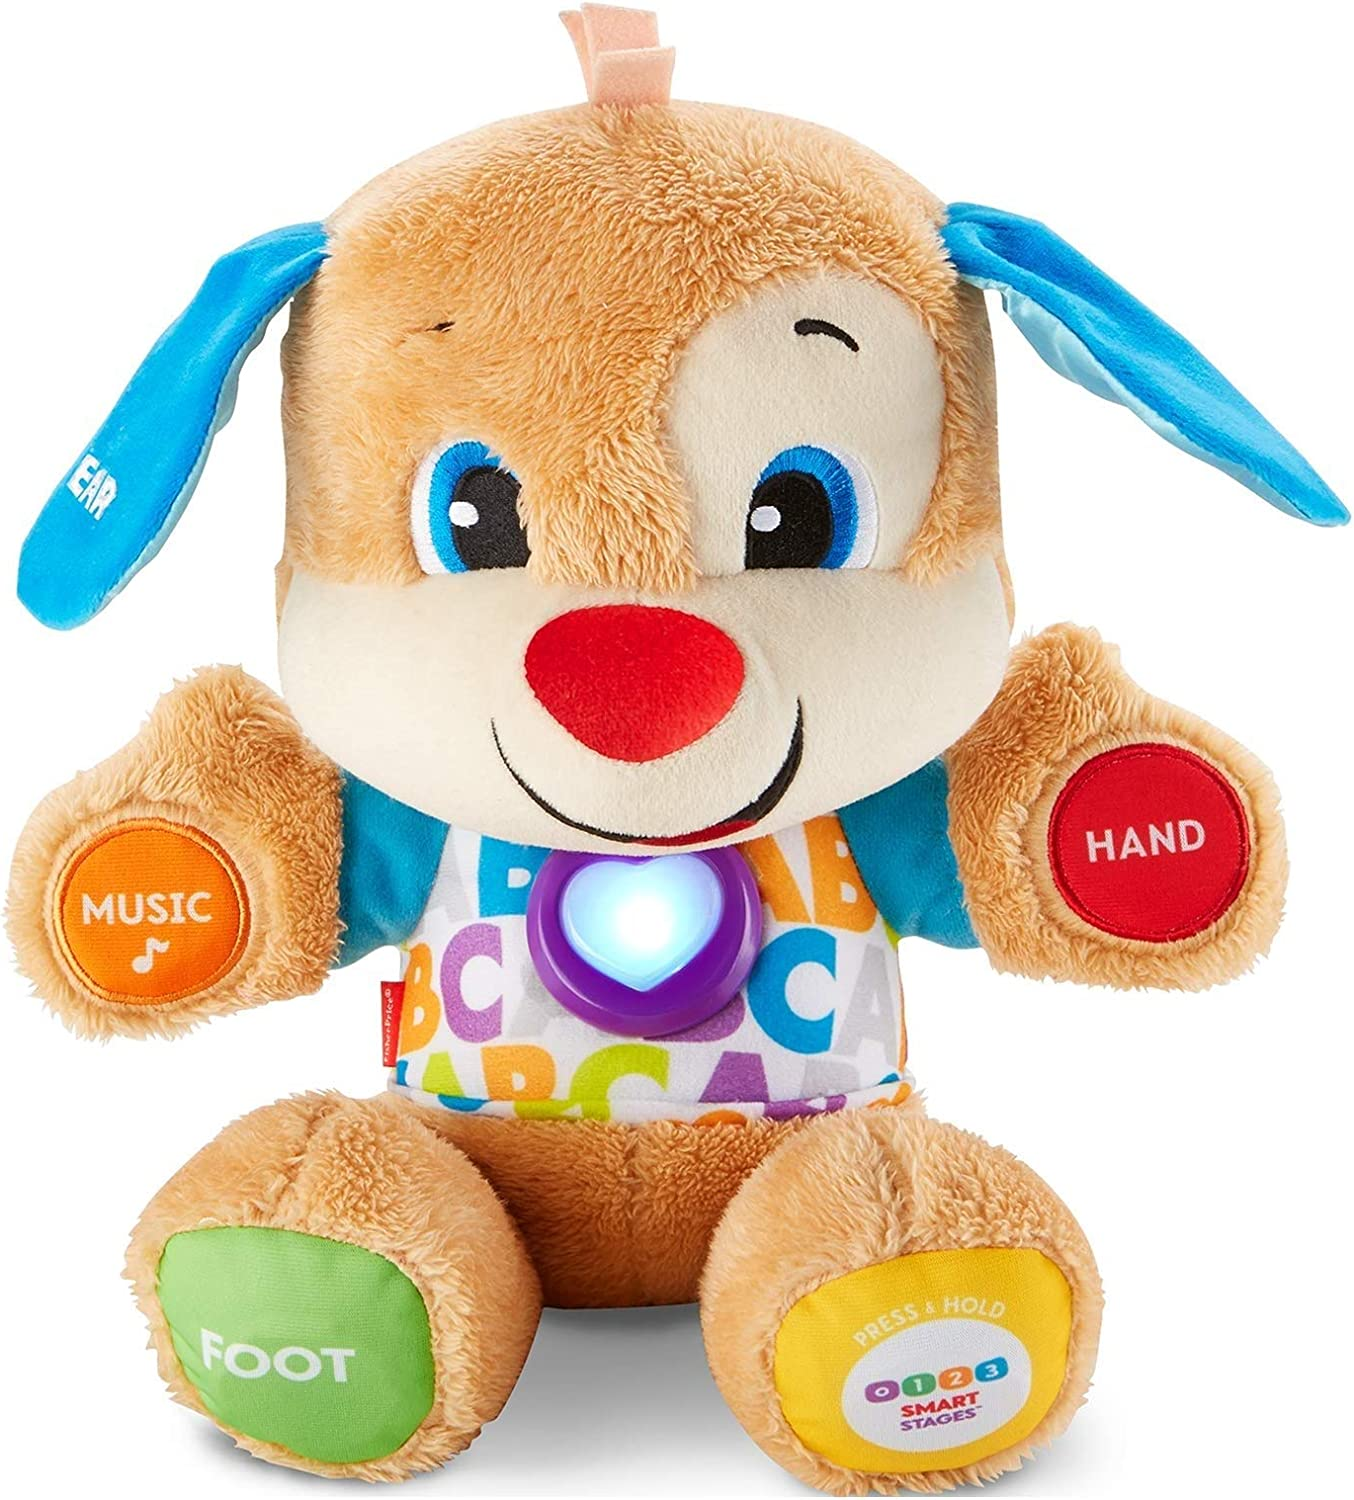 an image of FisherPrice electronic learning toy with music for toddler